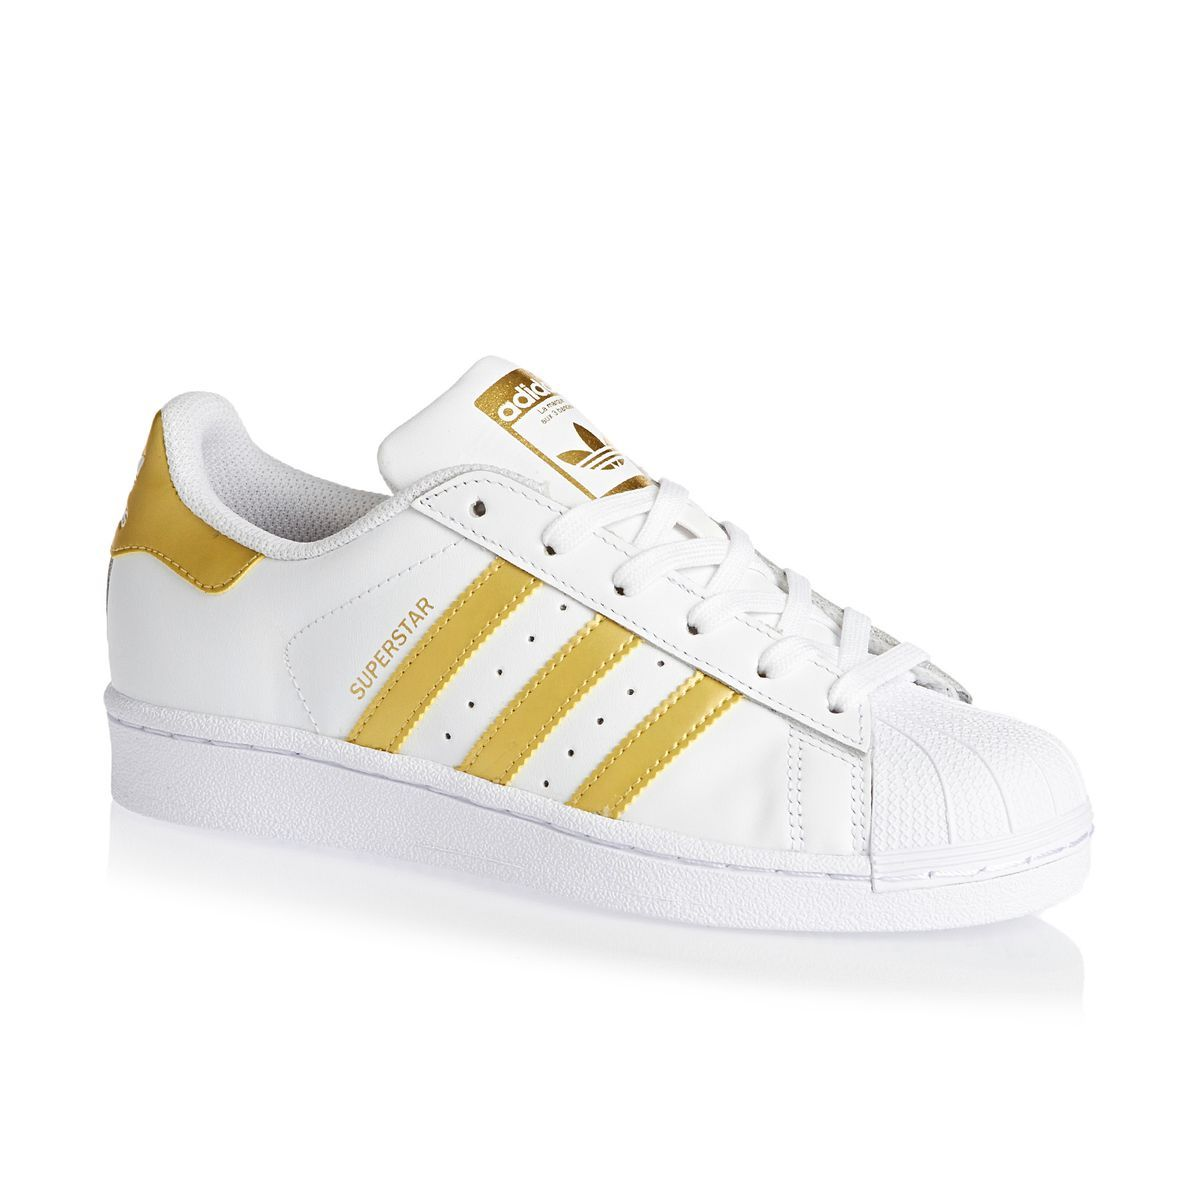 Adidas Originals Superstar J Shoes - White/Gold Metallic